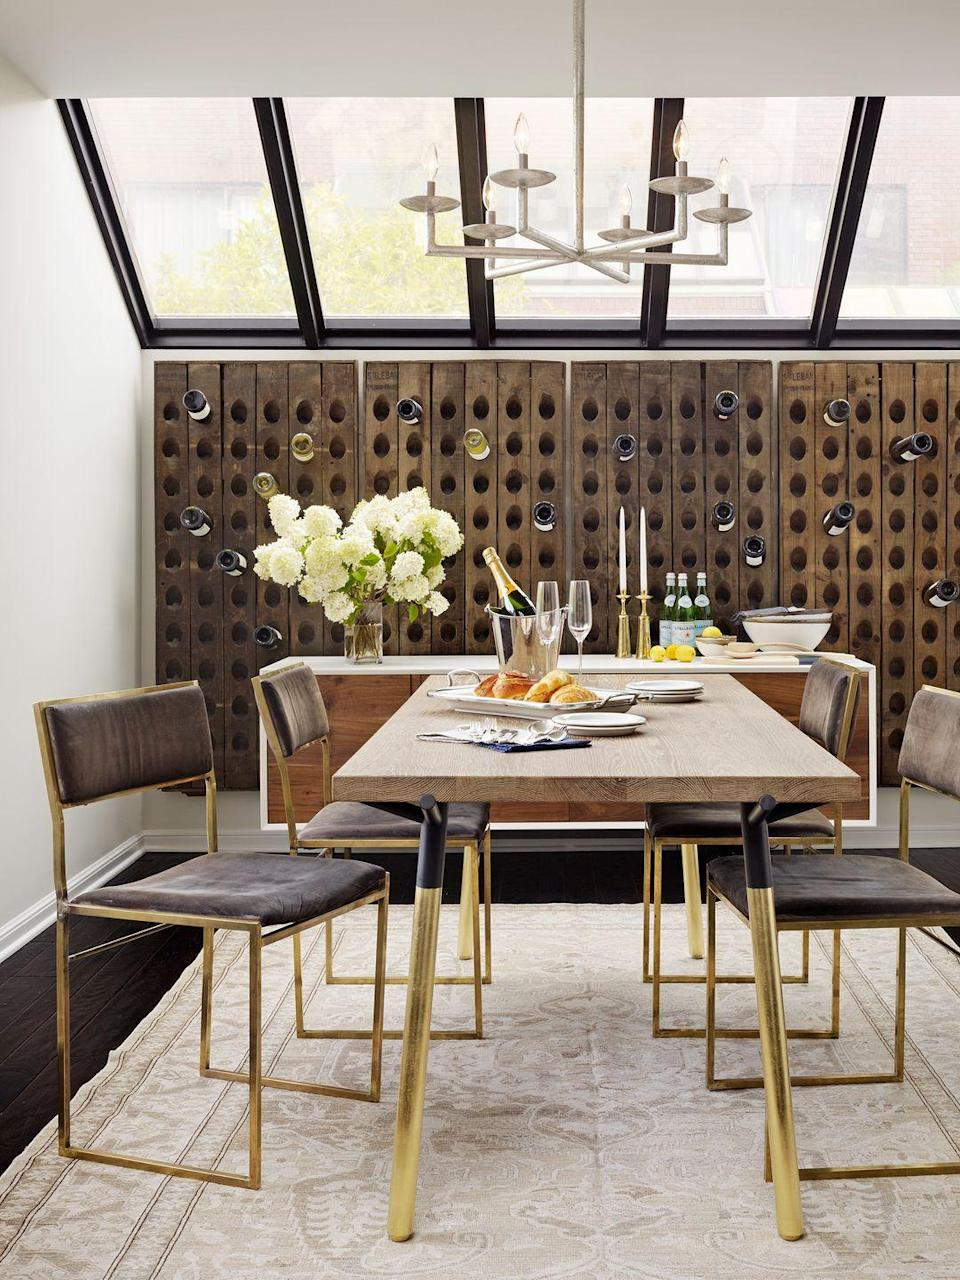 """<p>In this dining room by <a href=""""https://www.catherinekwong.com/"""" rel=""""nofollow noopener"""" target=""""_blank"""" data-ylk=""""slk:Catherine Kwong Design"""" class=""""link rapid-noclick-resp"""">Catherine Kwong Design</a>, the entire back wall is dedicated to wine. It makes entertaining easier when you can simply grab and pour without even leaving the room. Plus, if your basement has a skylight, even more reason to turn into a special occasion room, right?</p>"""